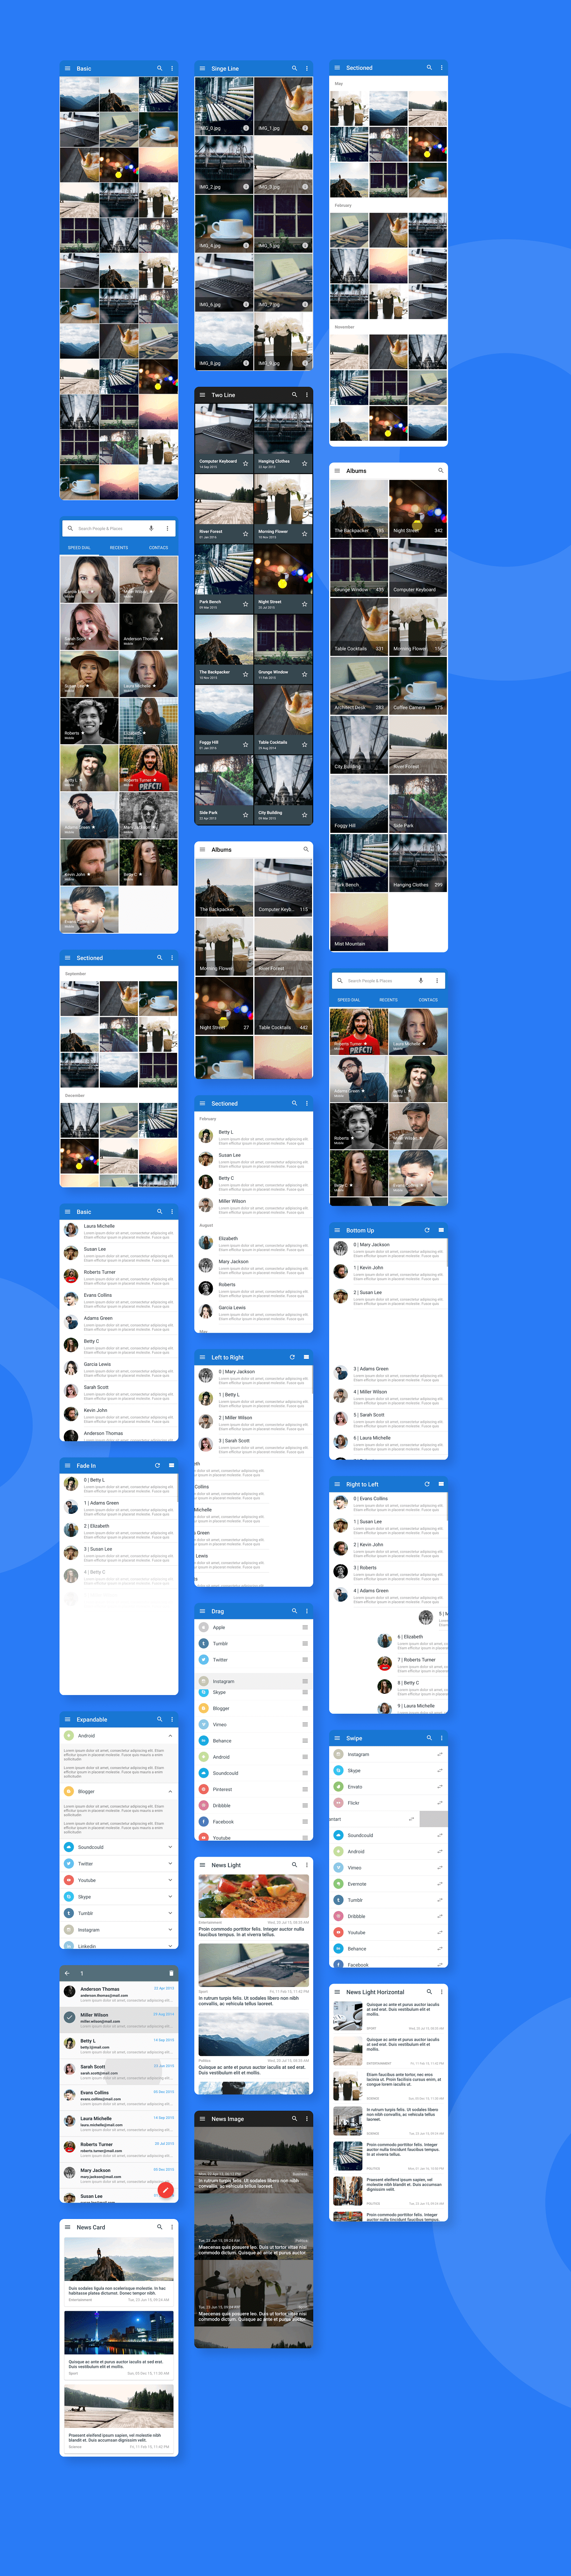 MaterialX - Android Material Design UI Components 2.7 - 16